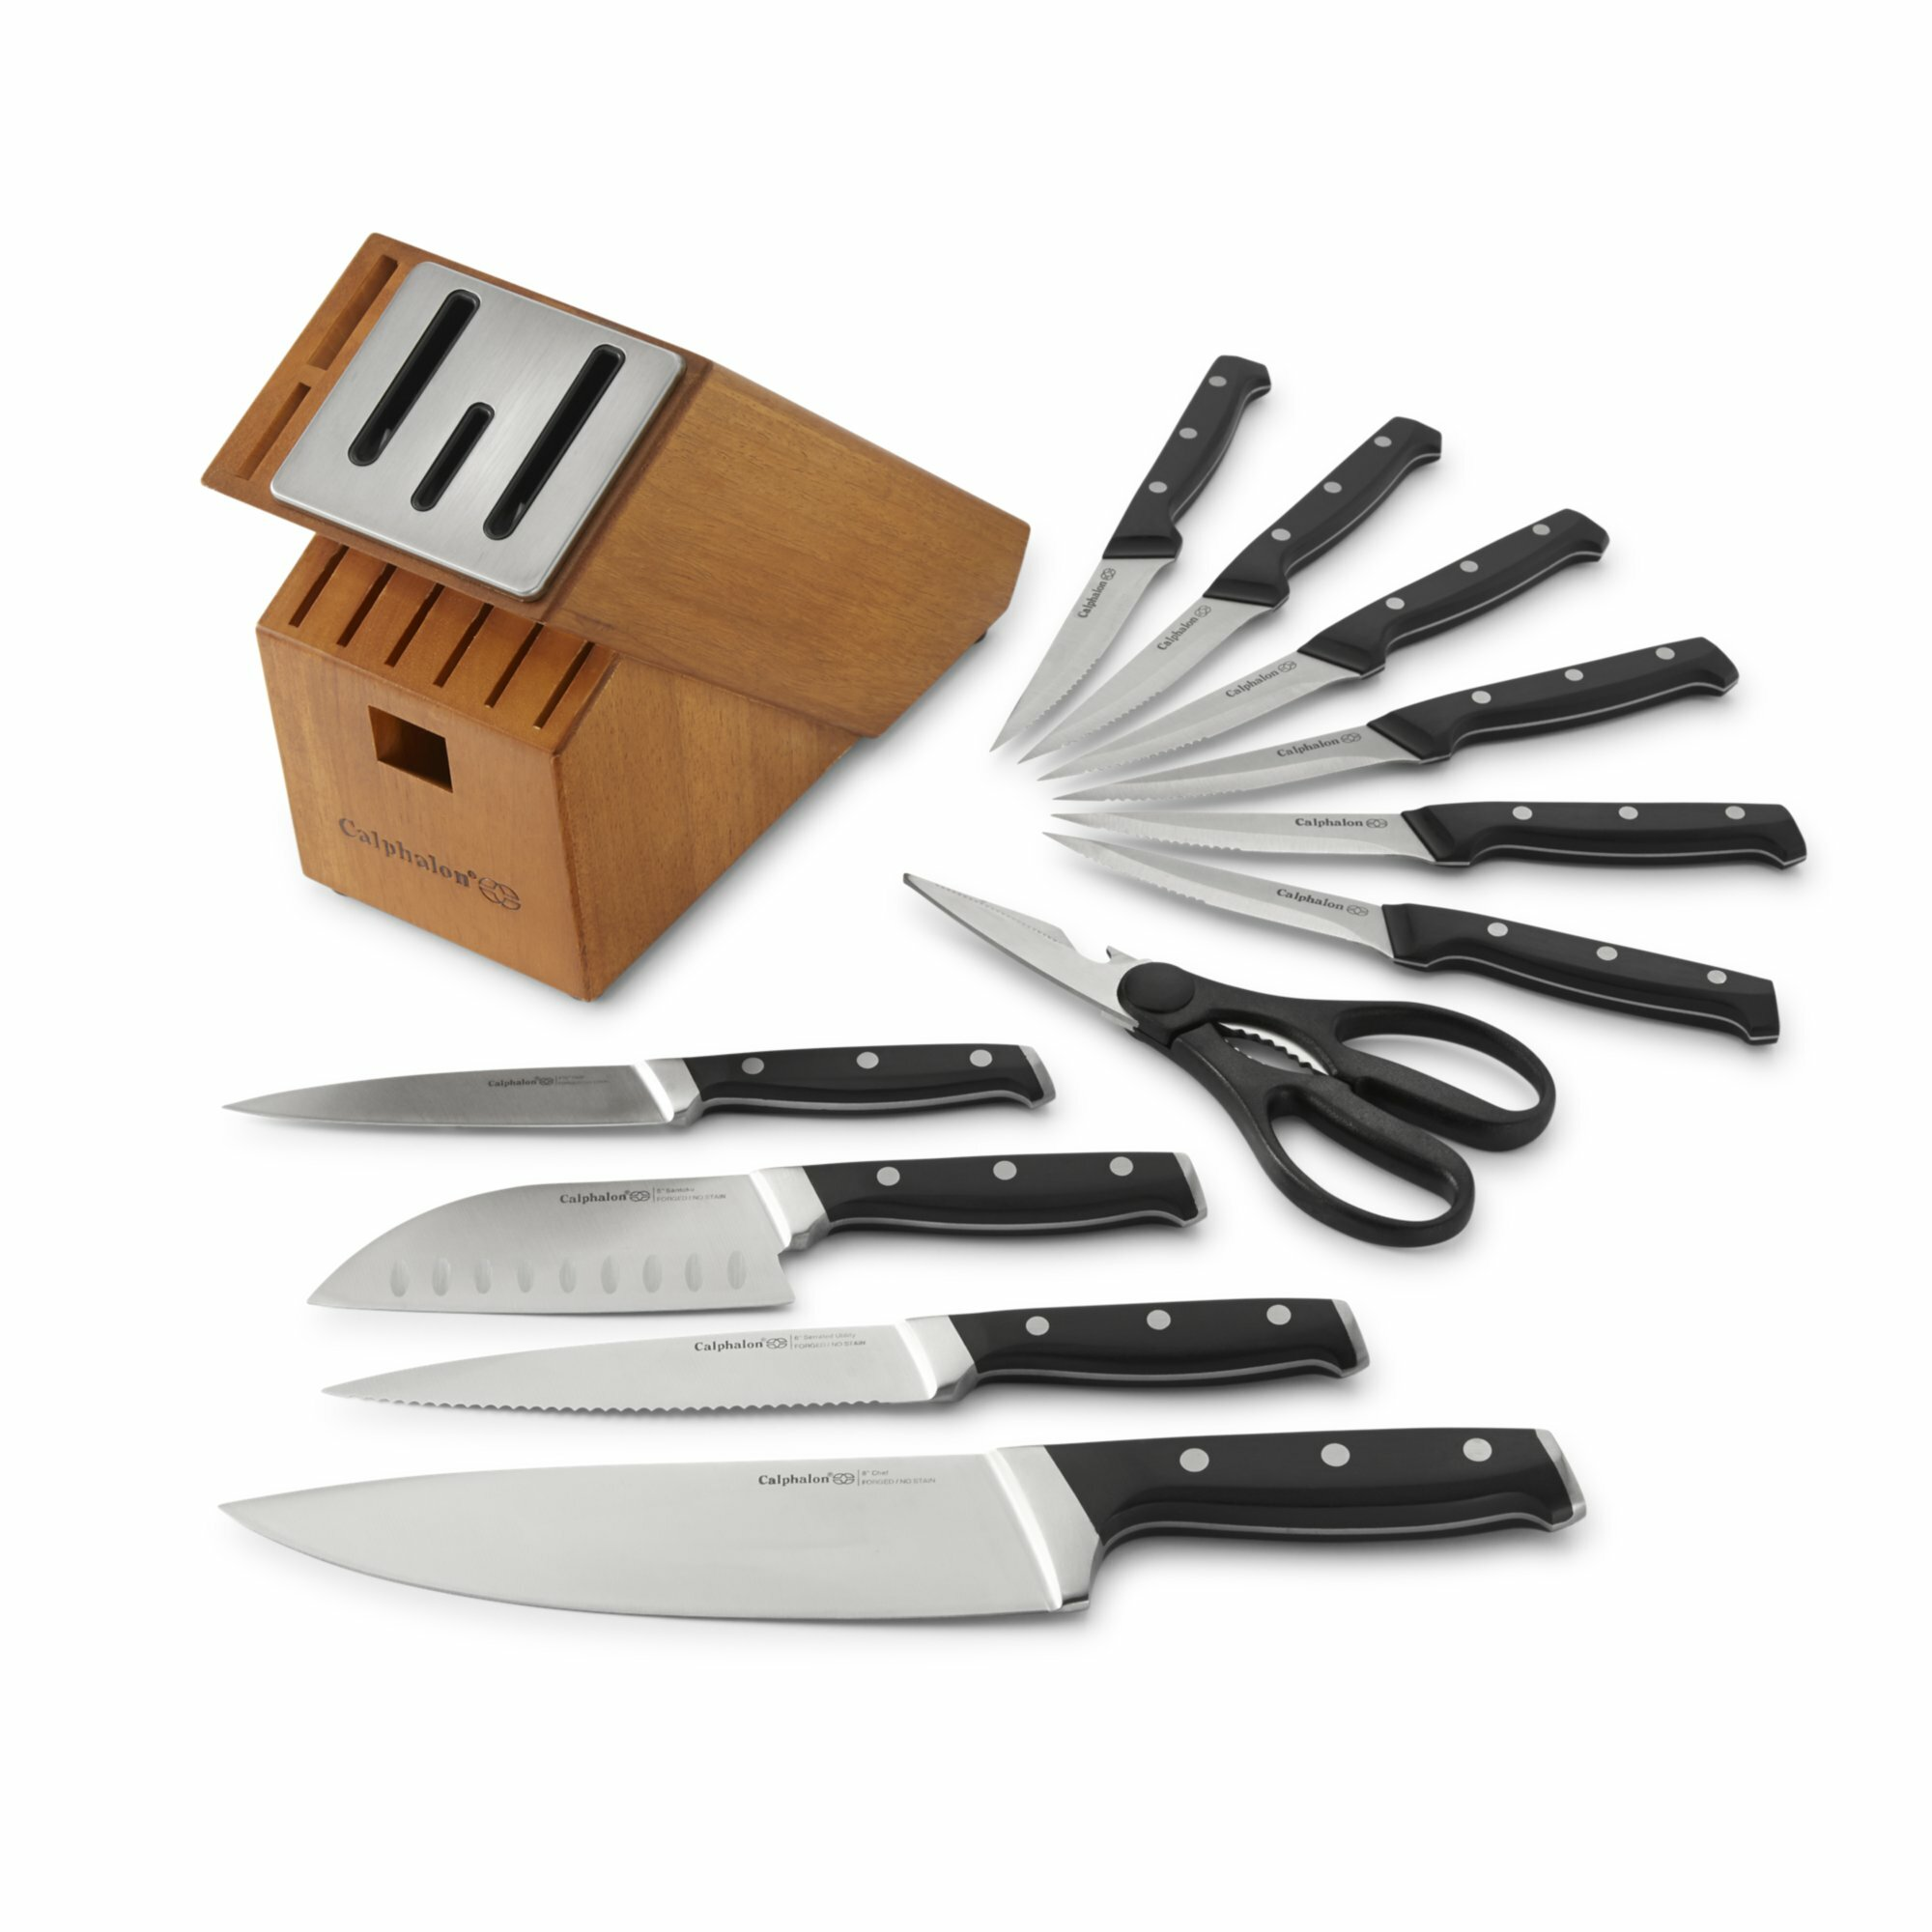 Calphalon Classic Sharpin 12 Piece Self Sharpening Knife Set